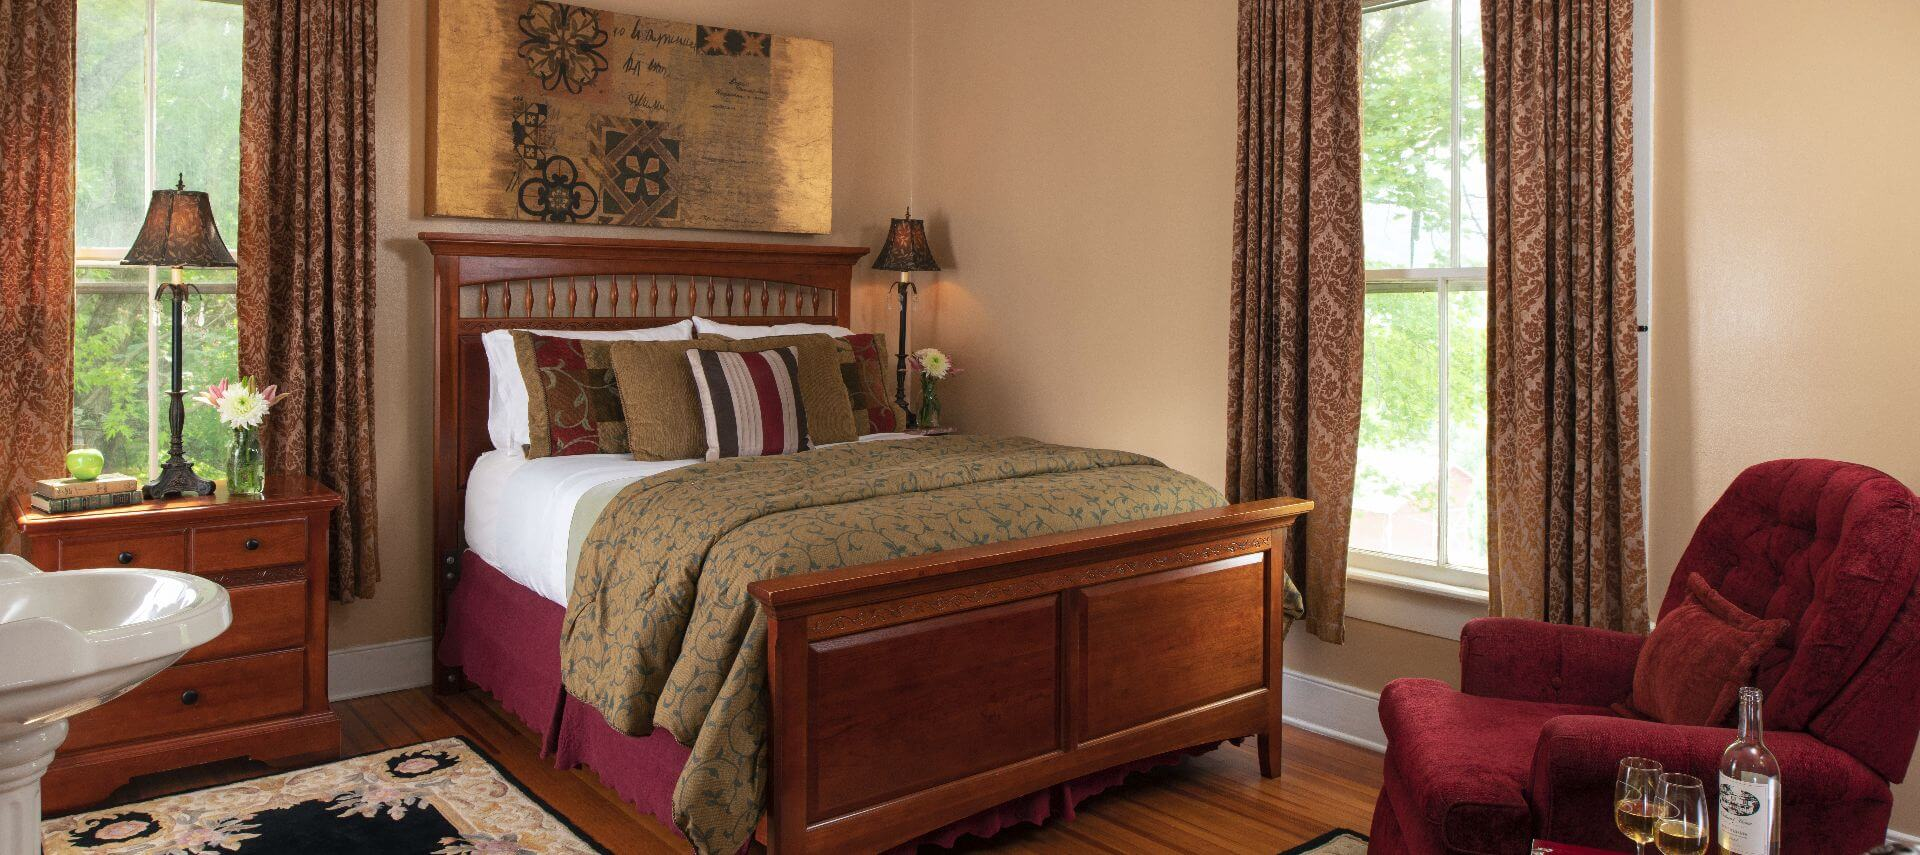 Elegant wooden sleigh bed covered insumptuous bedding in large airy room.